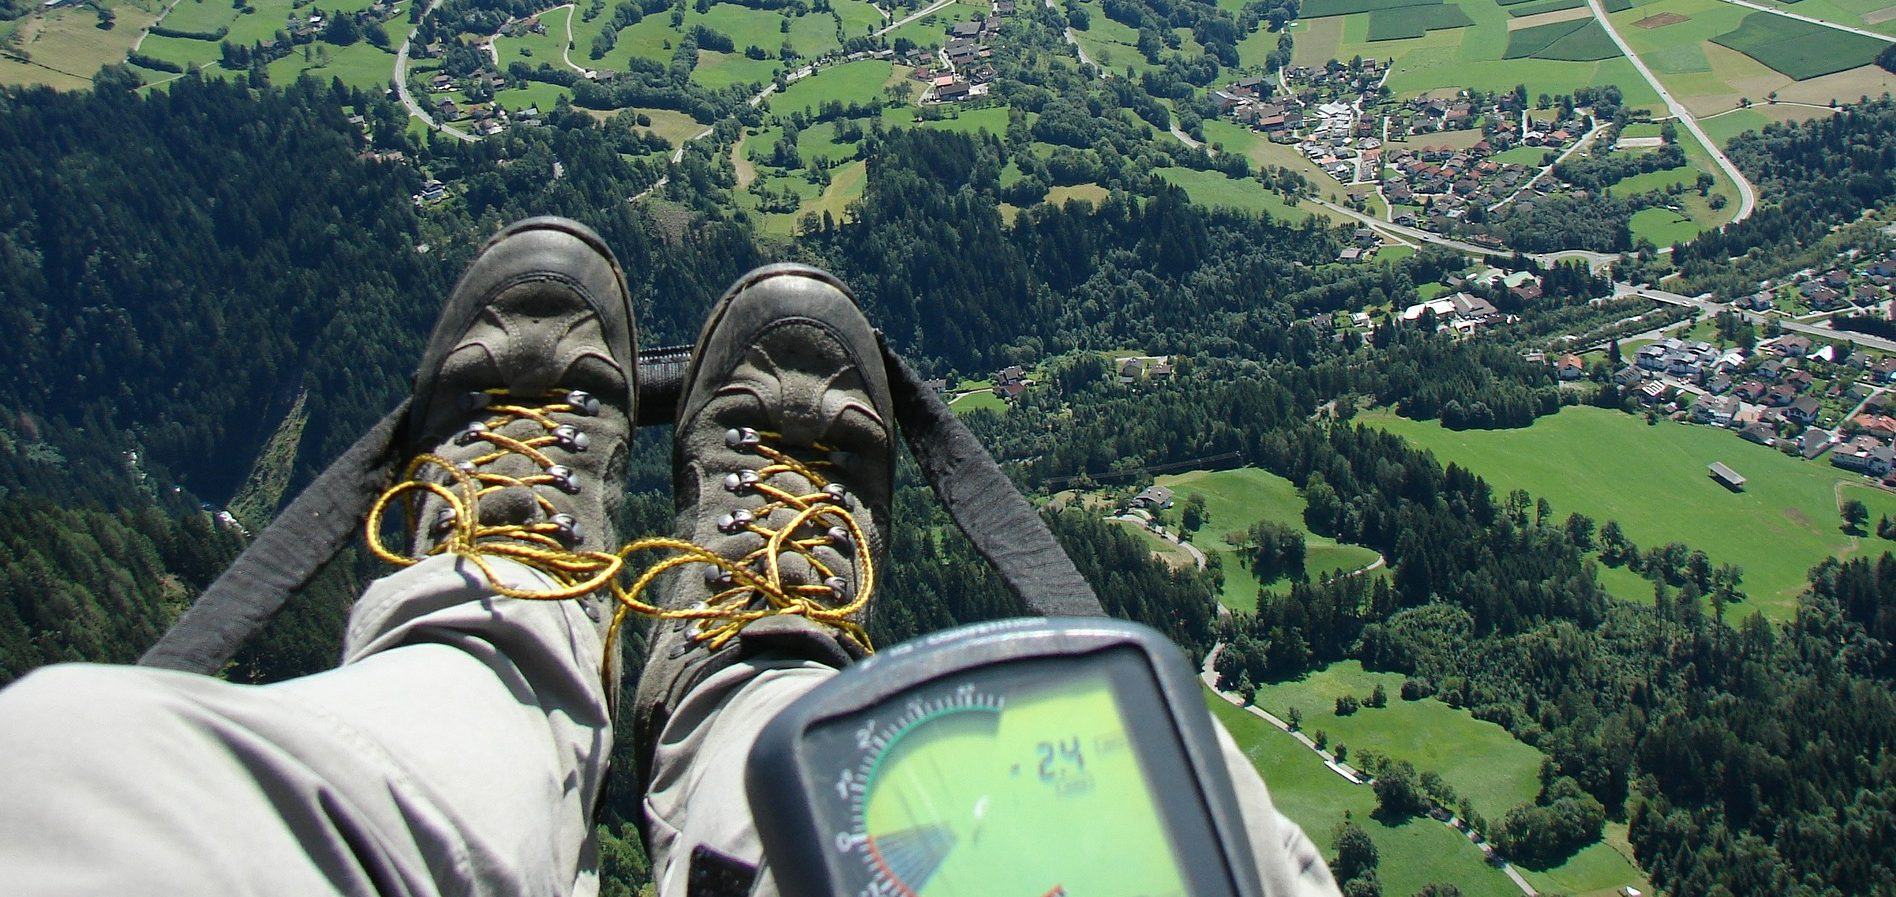 Learn how to start geocaching for fun